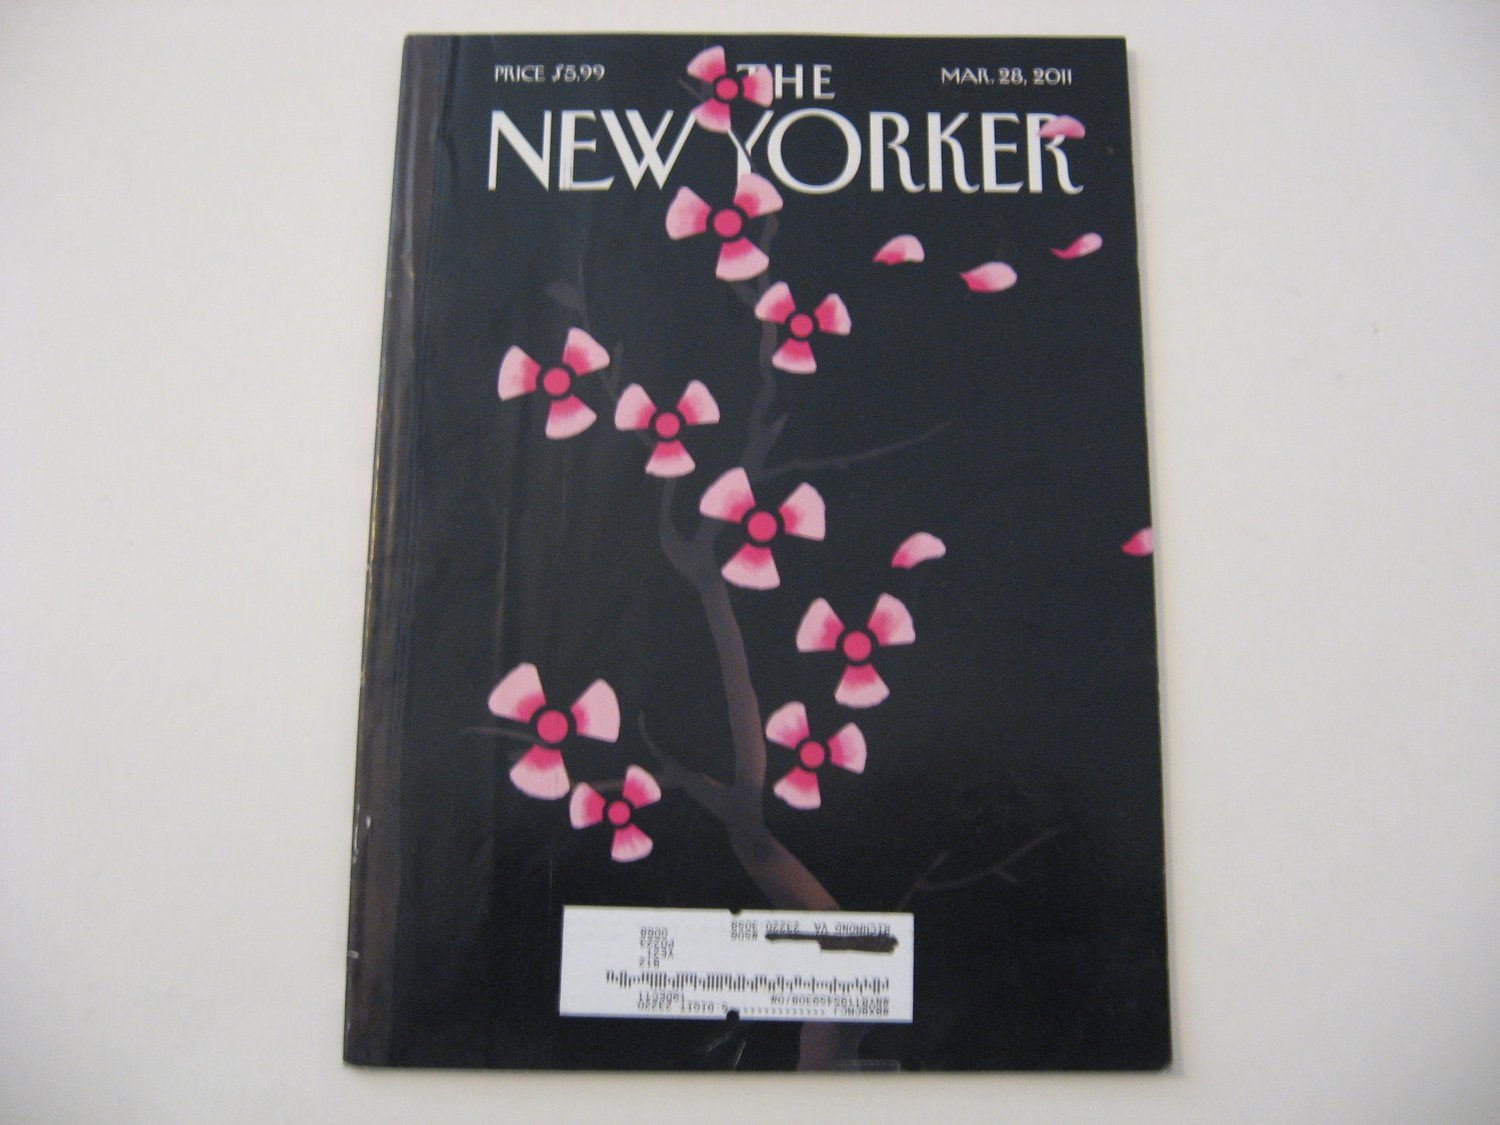 The New Yorker Magazine - Mar. 28, 2011